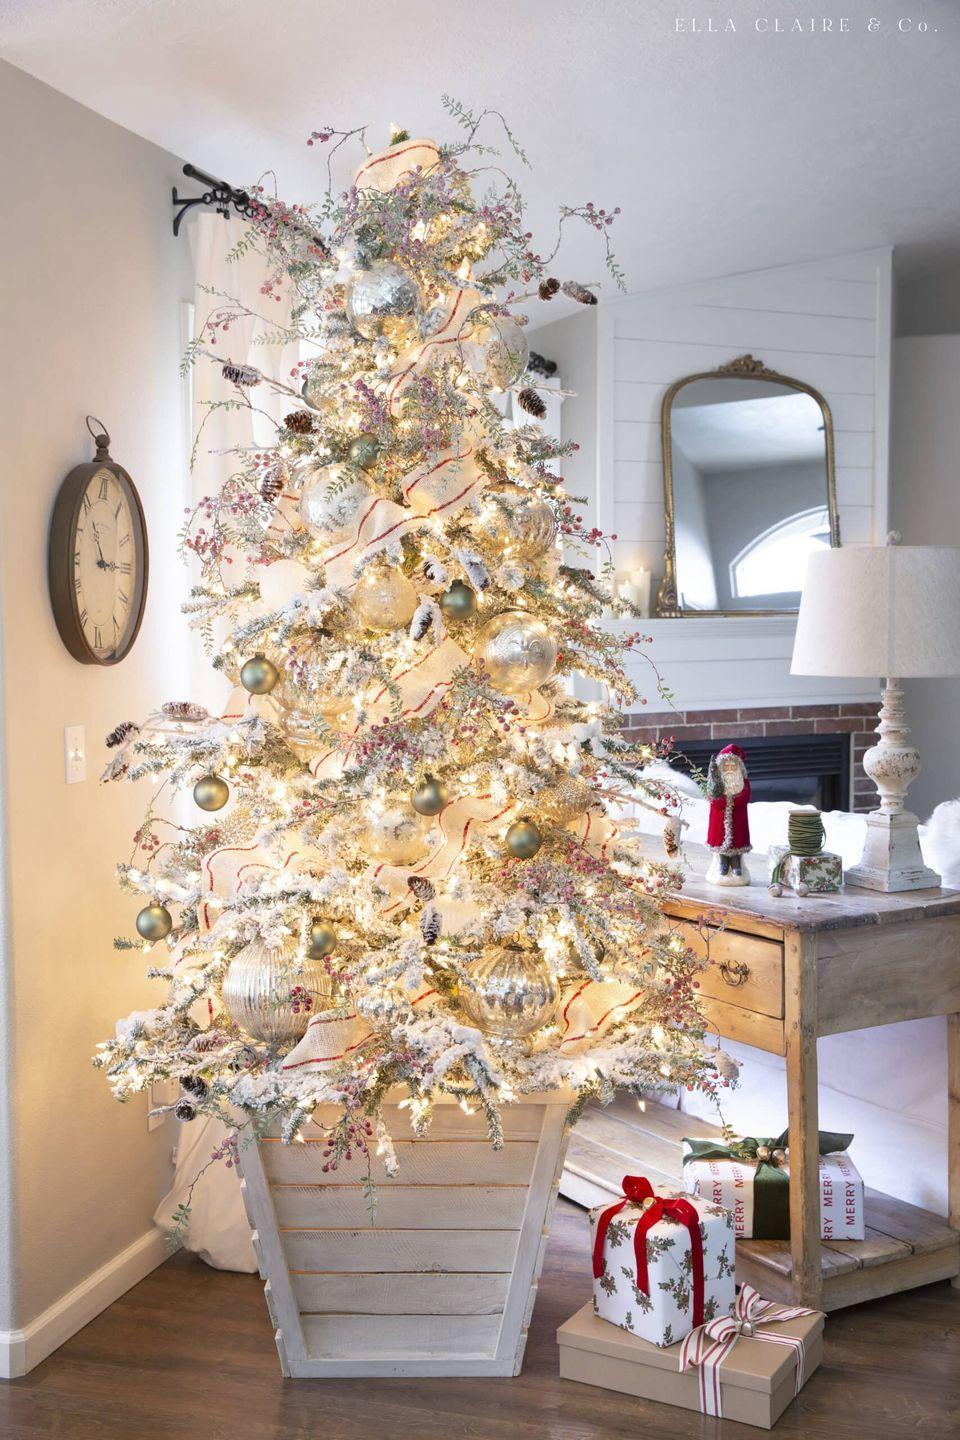 """<p>Vintage accents, mercury glass, and frosted berries and pinecones make up the bulk of this beautiful Christmas tree. </p><p><strong><em>Get the tutorial at <a href=""""https://www.ellaclaireinspired.com/vintage-red-and-green-christmas-tree/"""" rel=""""nofollow noopener"""" target=""""_blank"""" data-ylk=""""slk:Ella Claire & Co"""" class=""""link rapid-noclick-resp"""">Ella Claire & Co</a>.</em></strong></p><p><a class=""""link rapid-noclick-resp"""" href=""""https://www.amazon.com/Creative-Co-op-Embossed-Ornaments-OrnamentOrnament/dp/B07NW5462B?tag=syn-yahoo-20&ascsubtag=%5Bartid%7C10070.g.2025%5Bsrc%7Cyahoo-us"""" rel=""""nofollow noopener"""" target=""""_blank"""" data-ylk=""""slk:BUY MERCURY GLASS ORNAMENTS"""">BUY MERCURY GLASS ORNAMENTS</a></p>"""